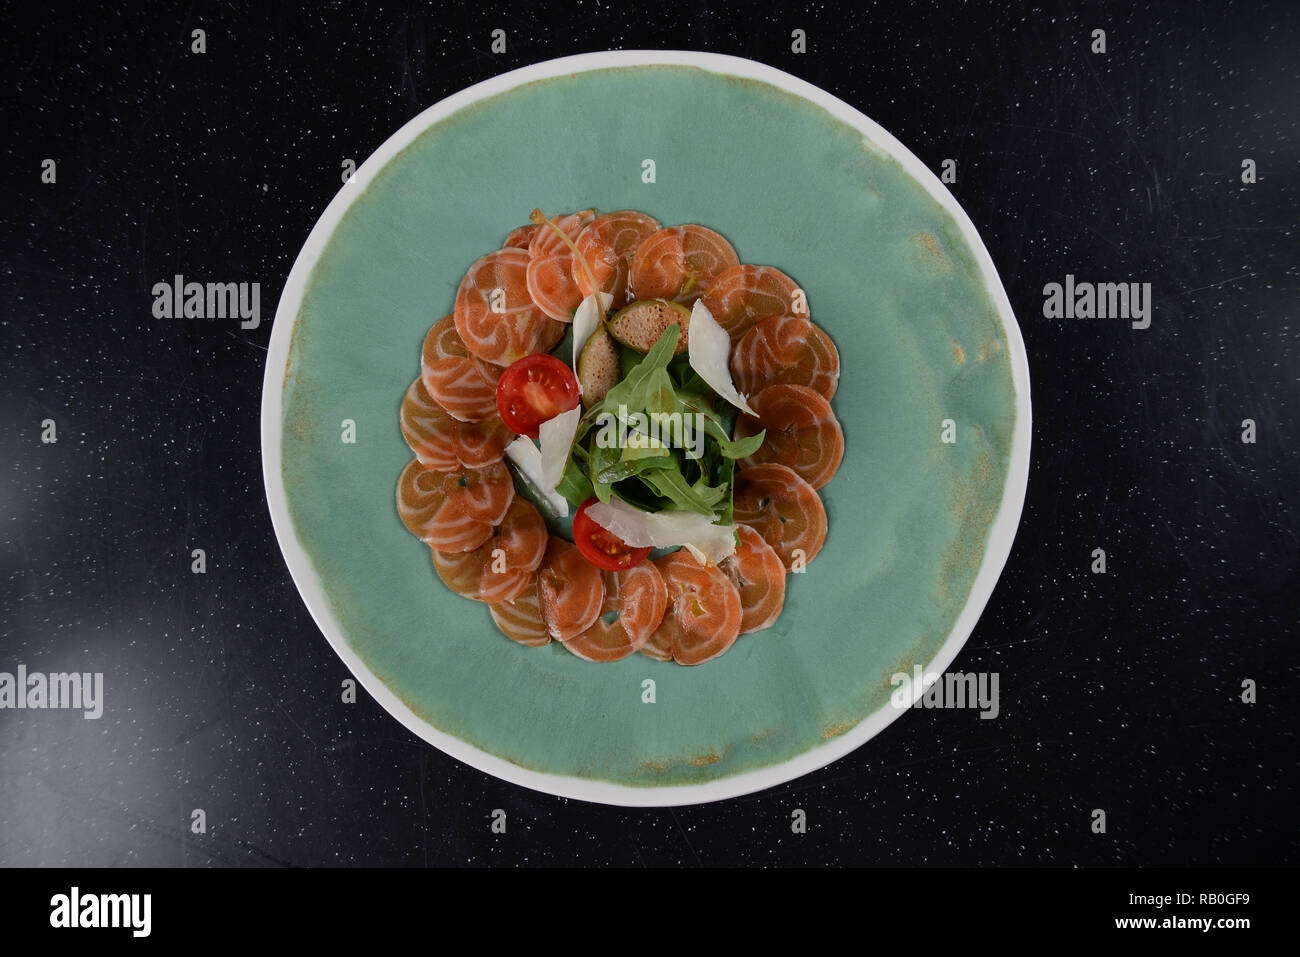 Luxury restaurant lachs red salmon appetizer with cheese on round dish, flat lay view from above - Stock Image